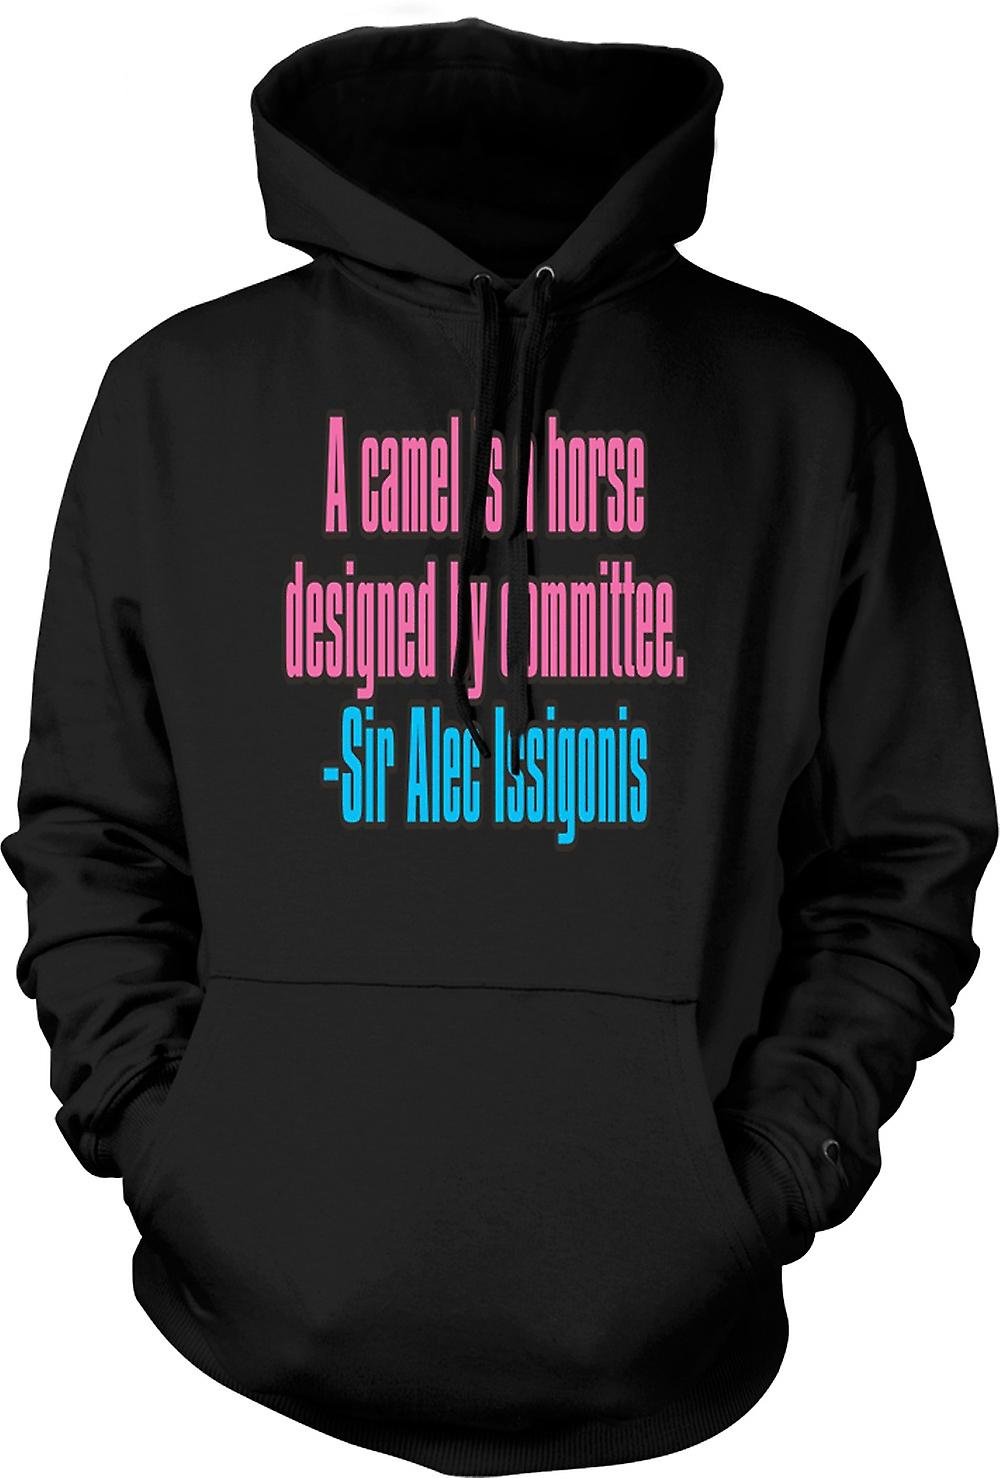 Mens Hoodie - A Camel Is A Horse Quote - Sir Alec Issigonis